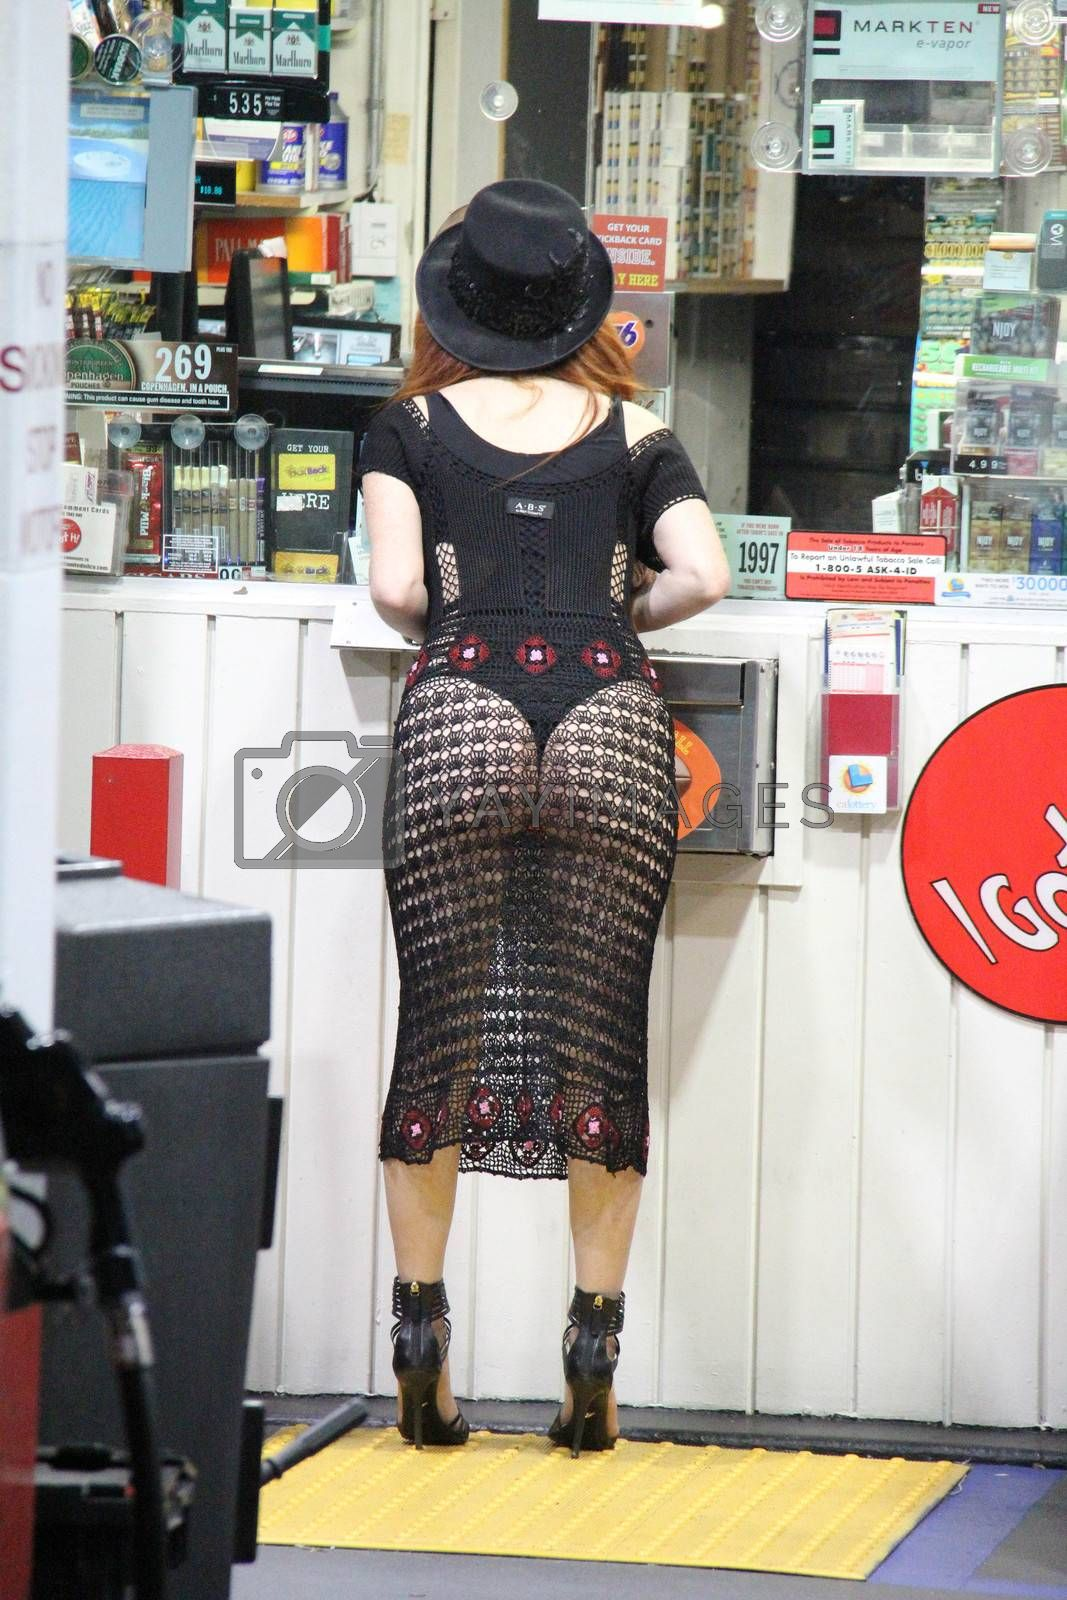 Phoebe Price stops to get gas at night while wearing a revealing, see-thru dress, Los Feliz, Los Angeles, CA 09-22-15/ImageCollect by ImageCollect